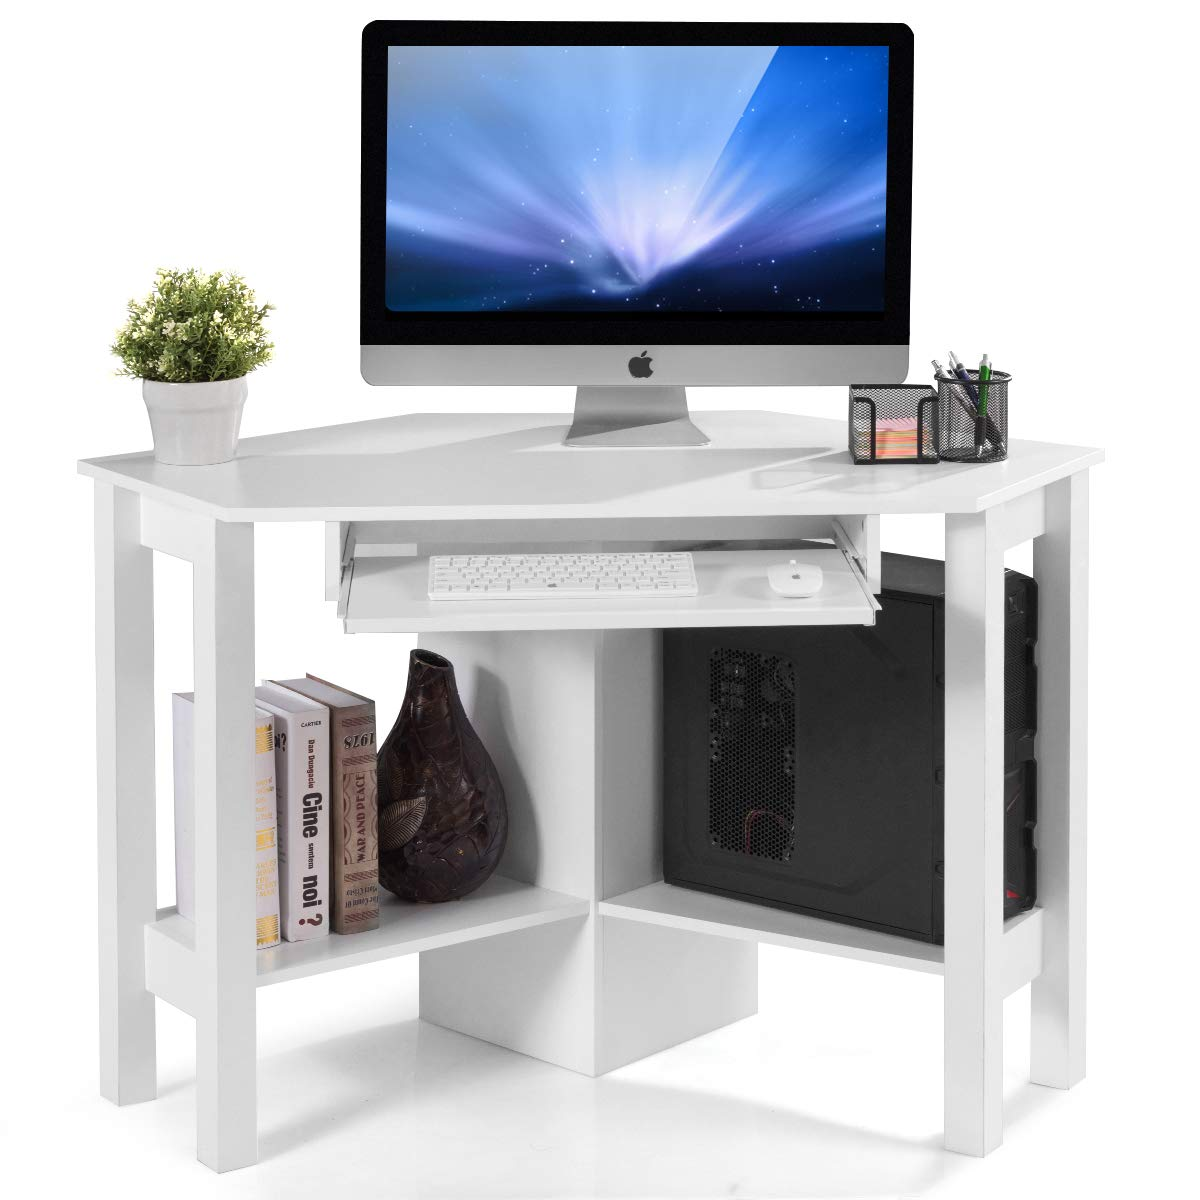 Tangkula Corner Desk, Corner Computer Desk, Wood Compact Home Office Desk, Laptop PC Table Writing Study Table, Workstation with Smooth Keyboard Tray Storage Shelves